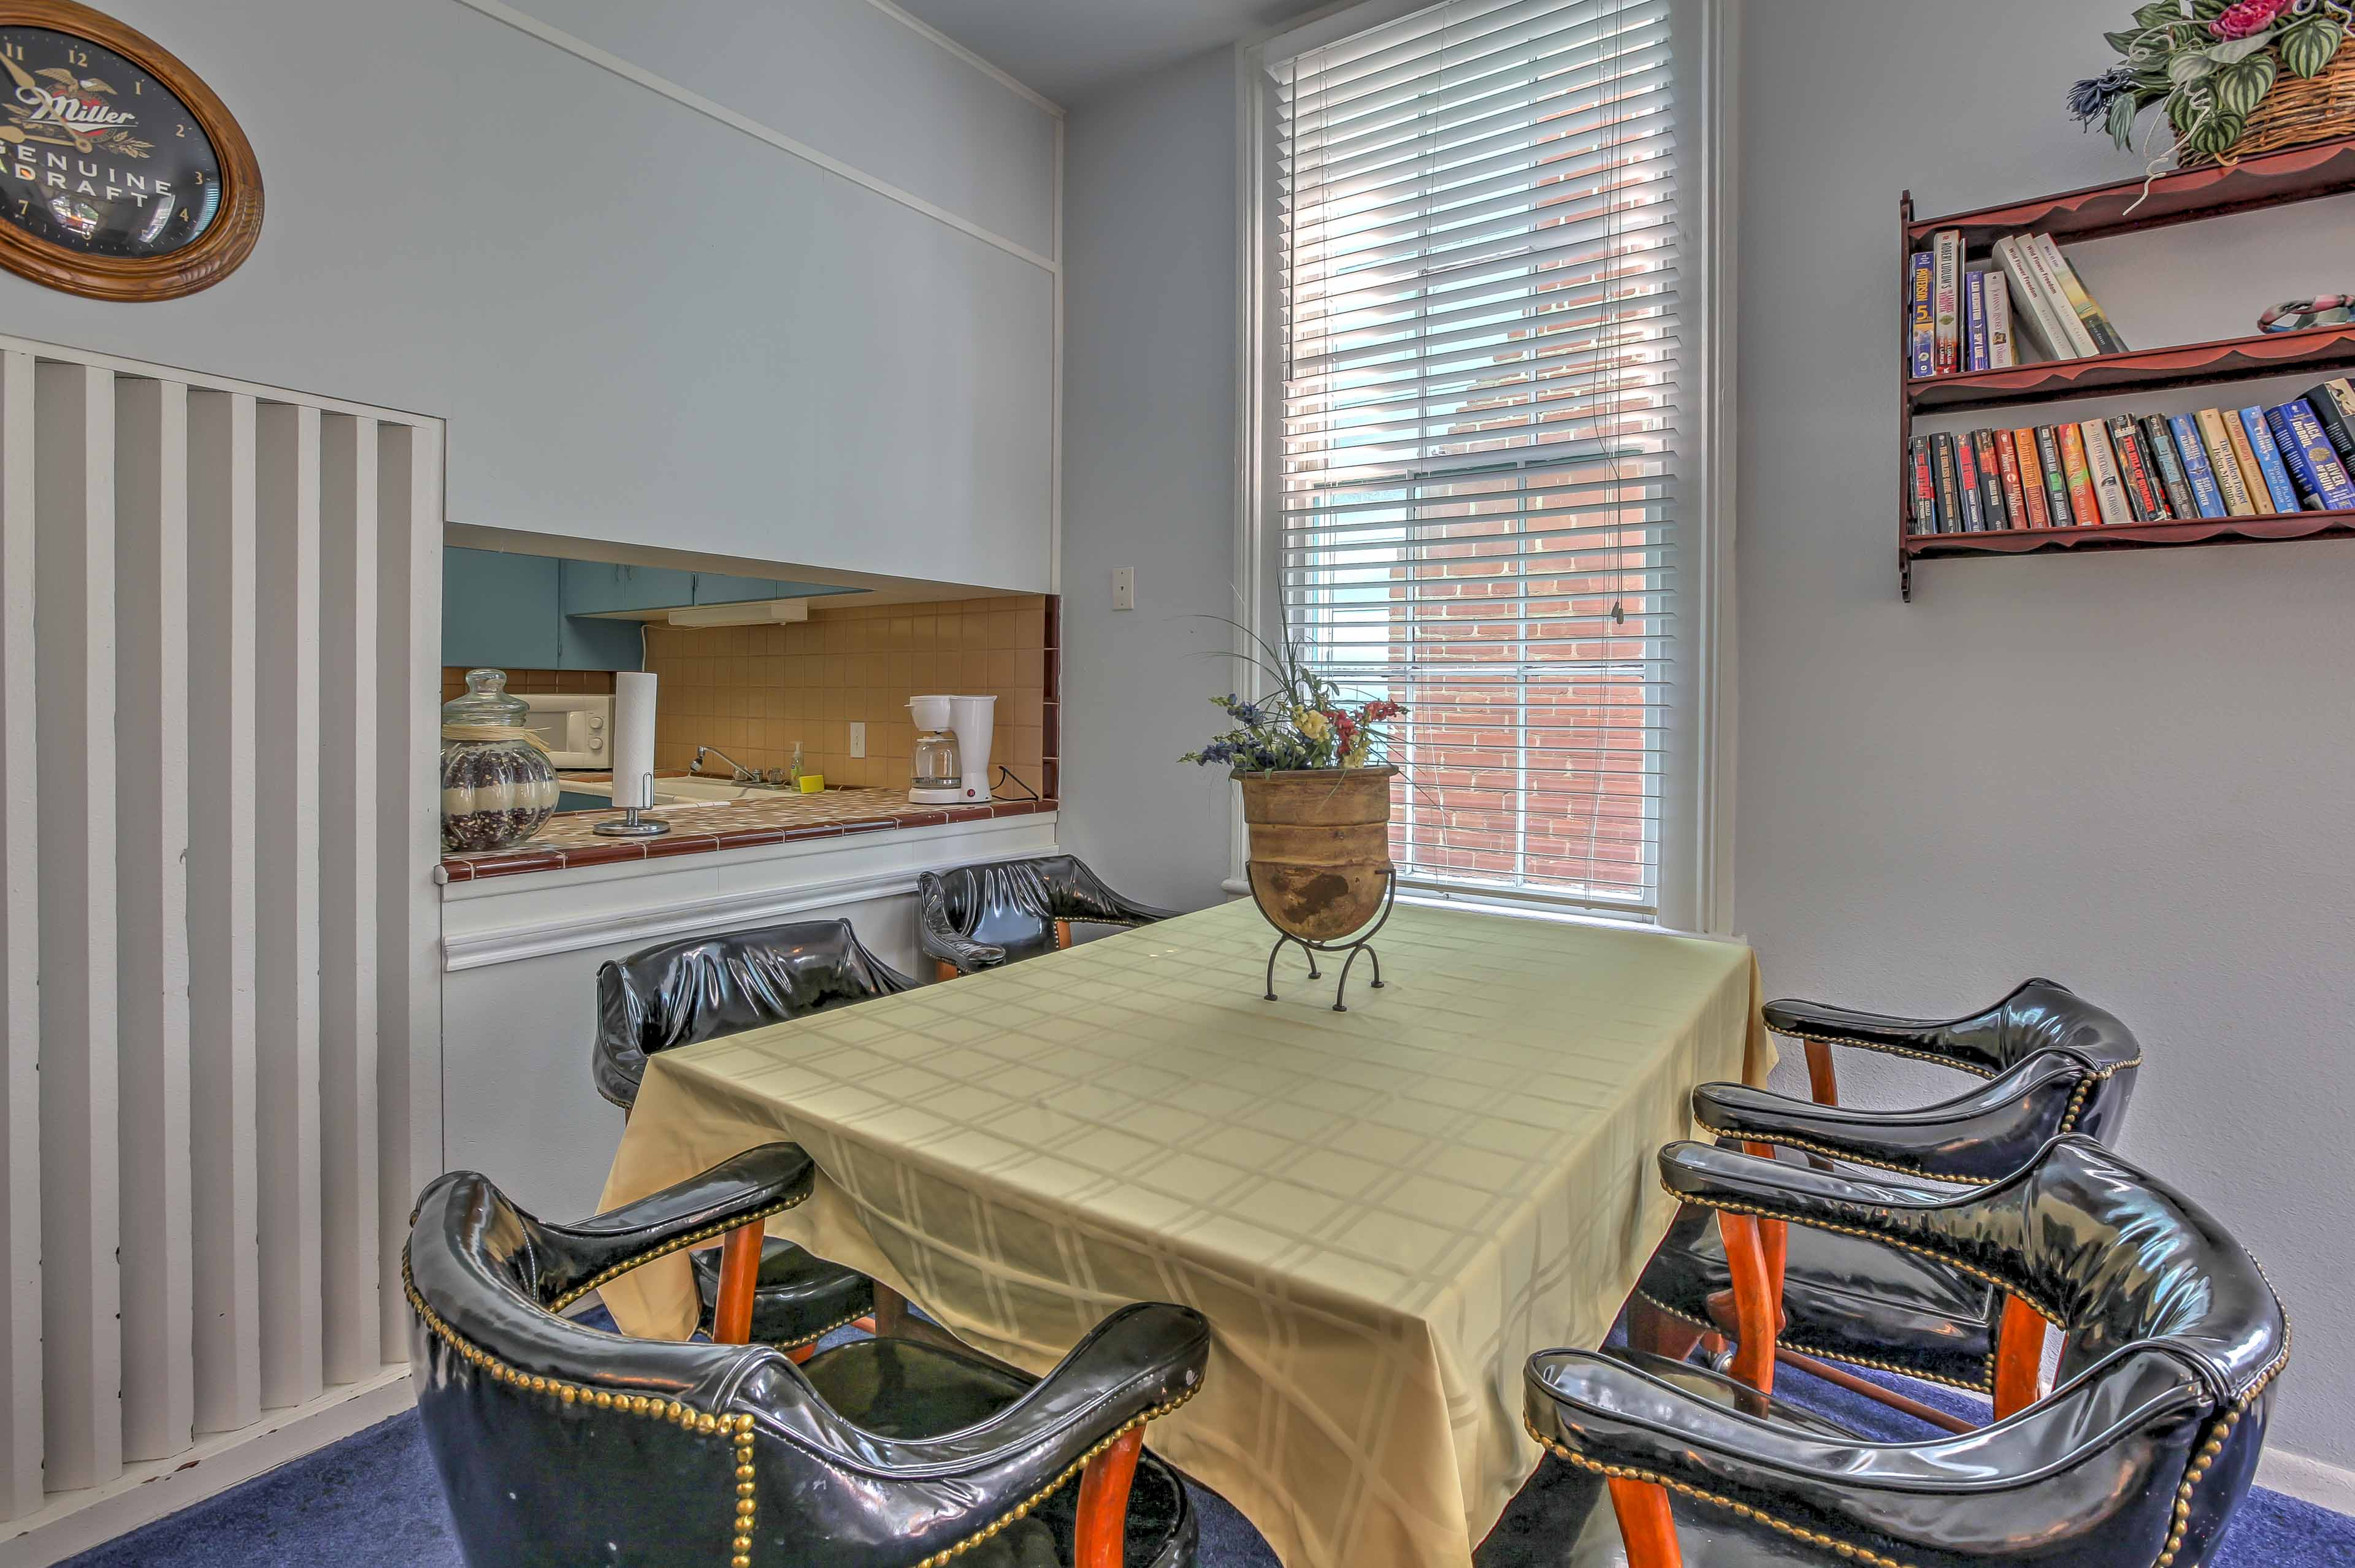 Dine with your loved ones at this 5-person table.